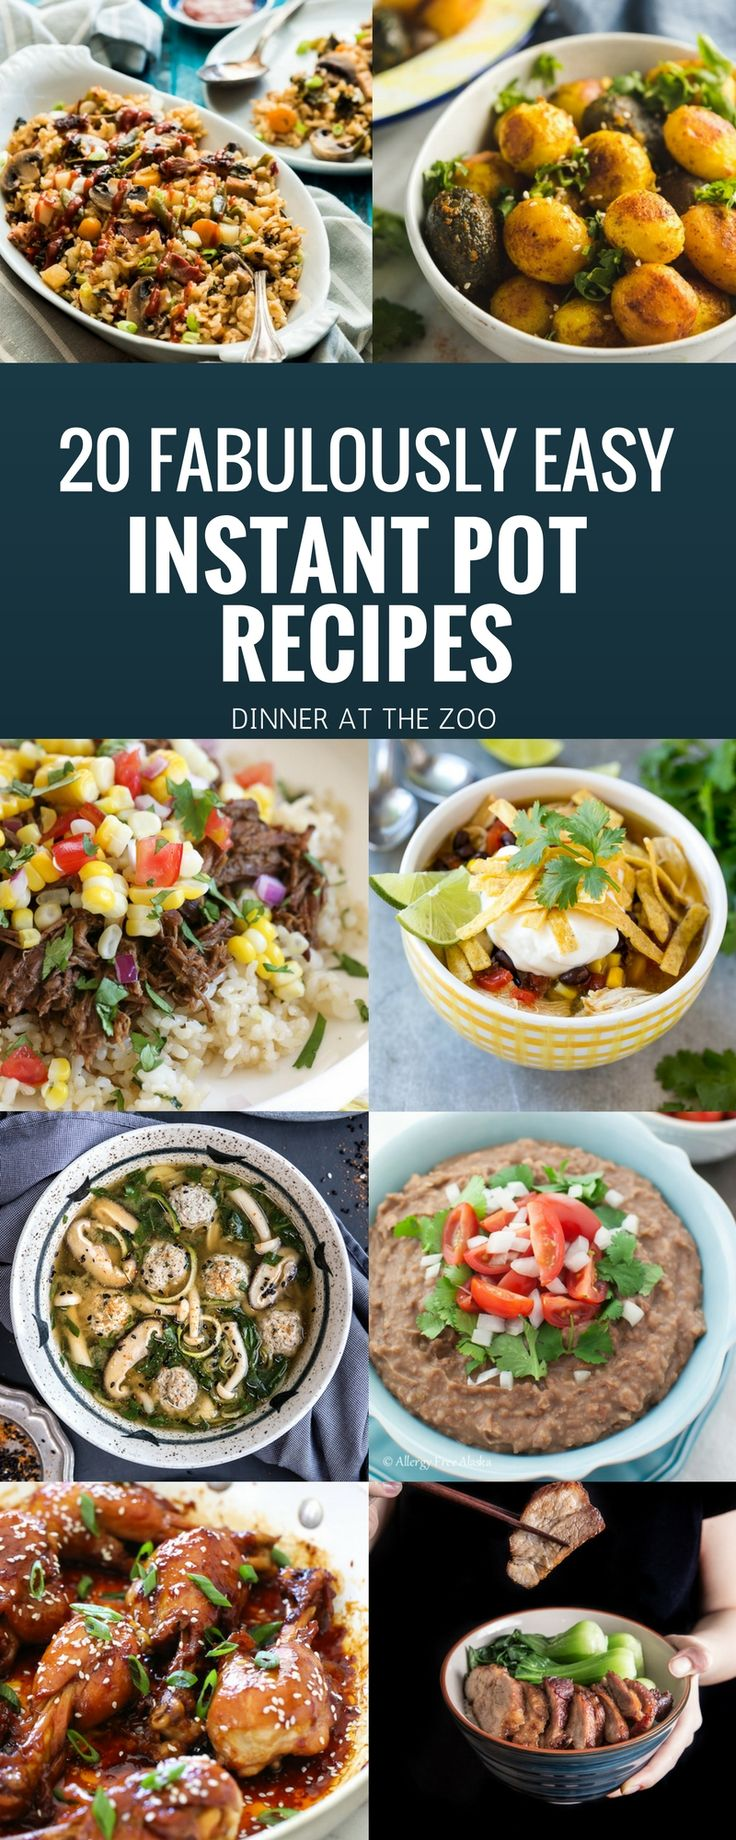 Got an Instant Pot? I'm in love with this amazing appliance! I've collected 20 of the best Instant Pot recipes, everything from hearty soups to decadent desserts!